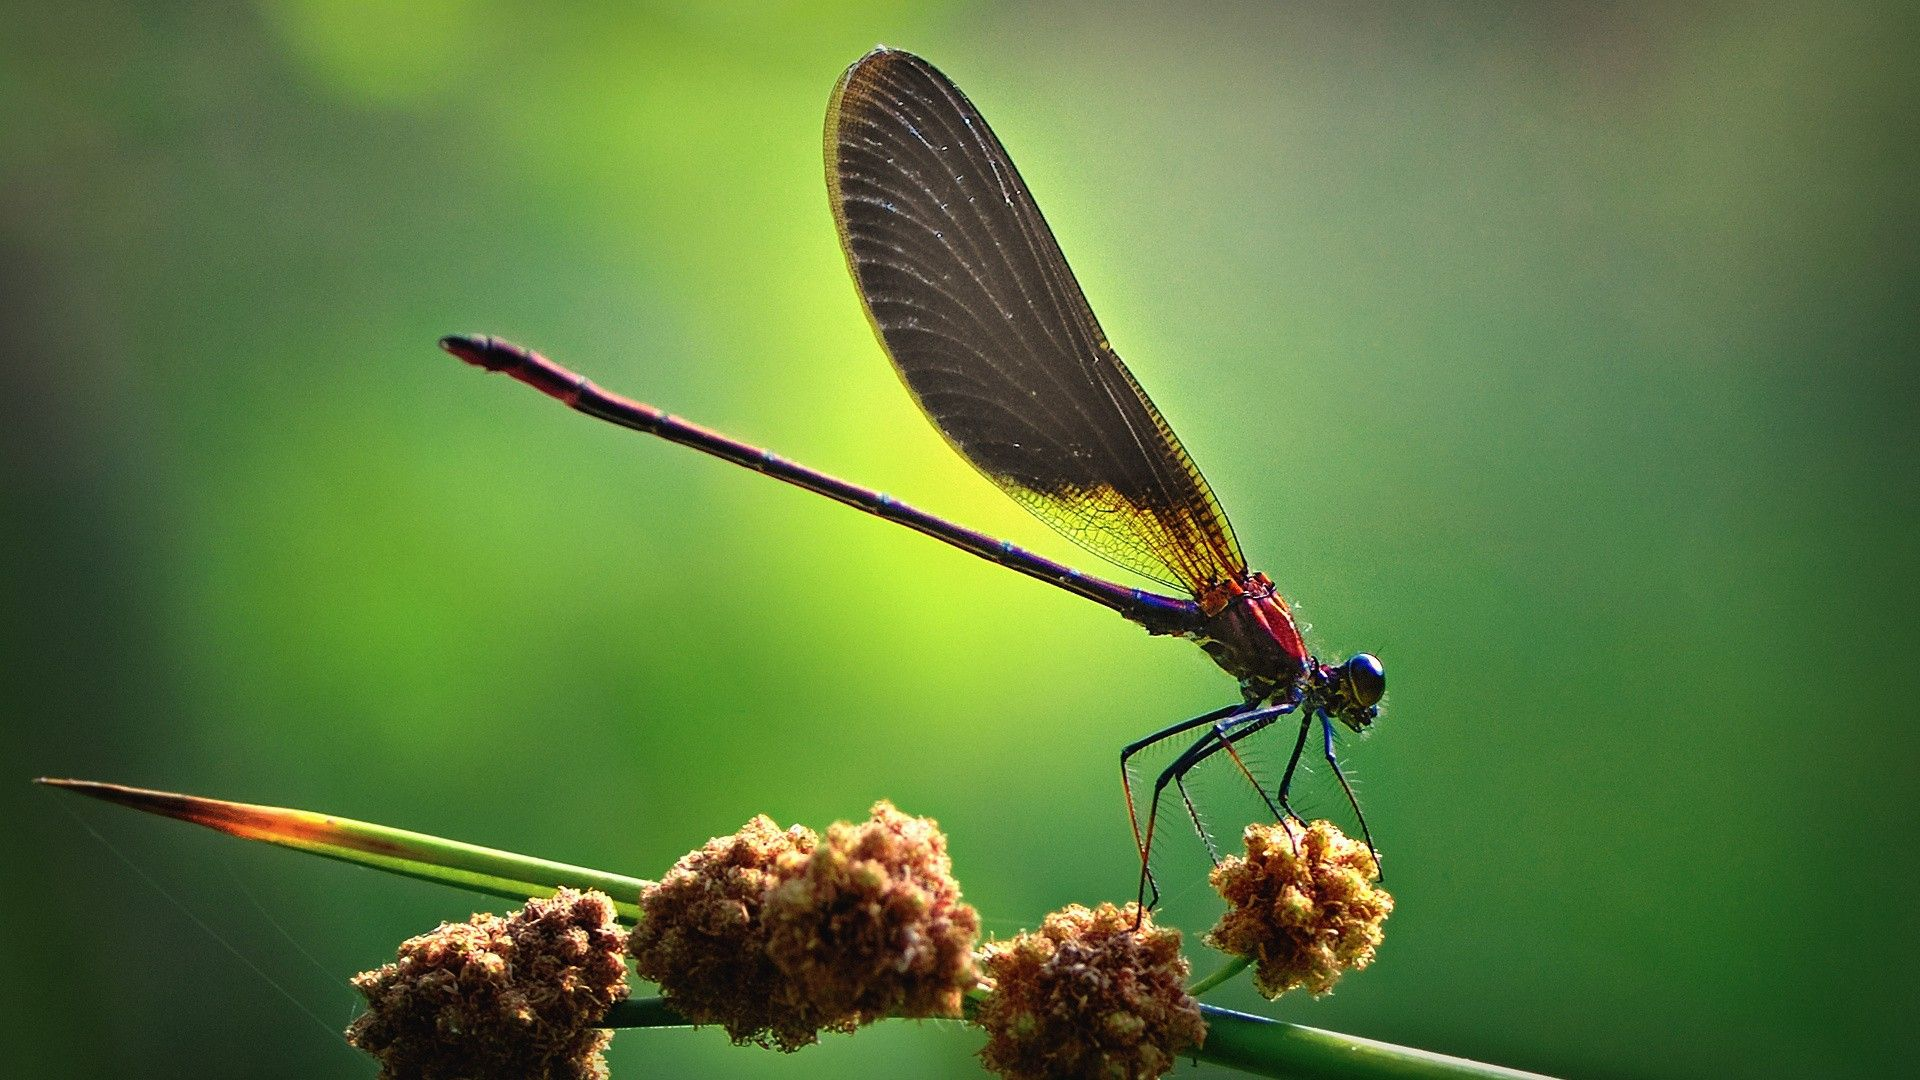 dragonflies, insect wallpapers and images - wallpapers ...